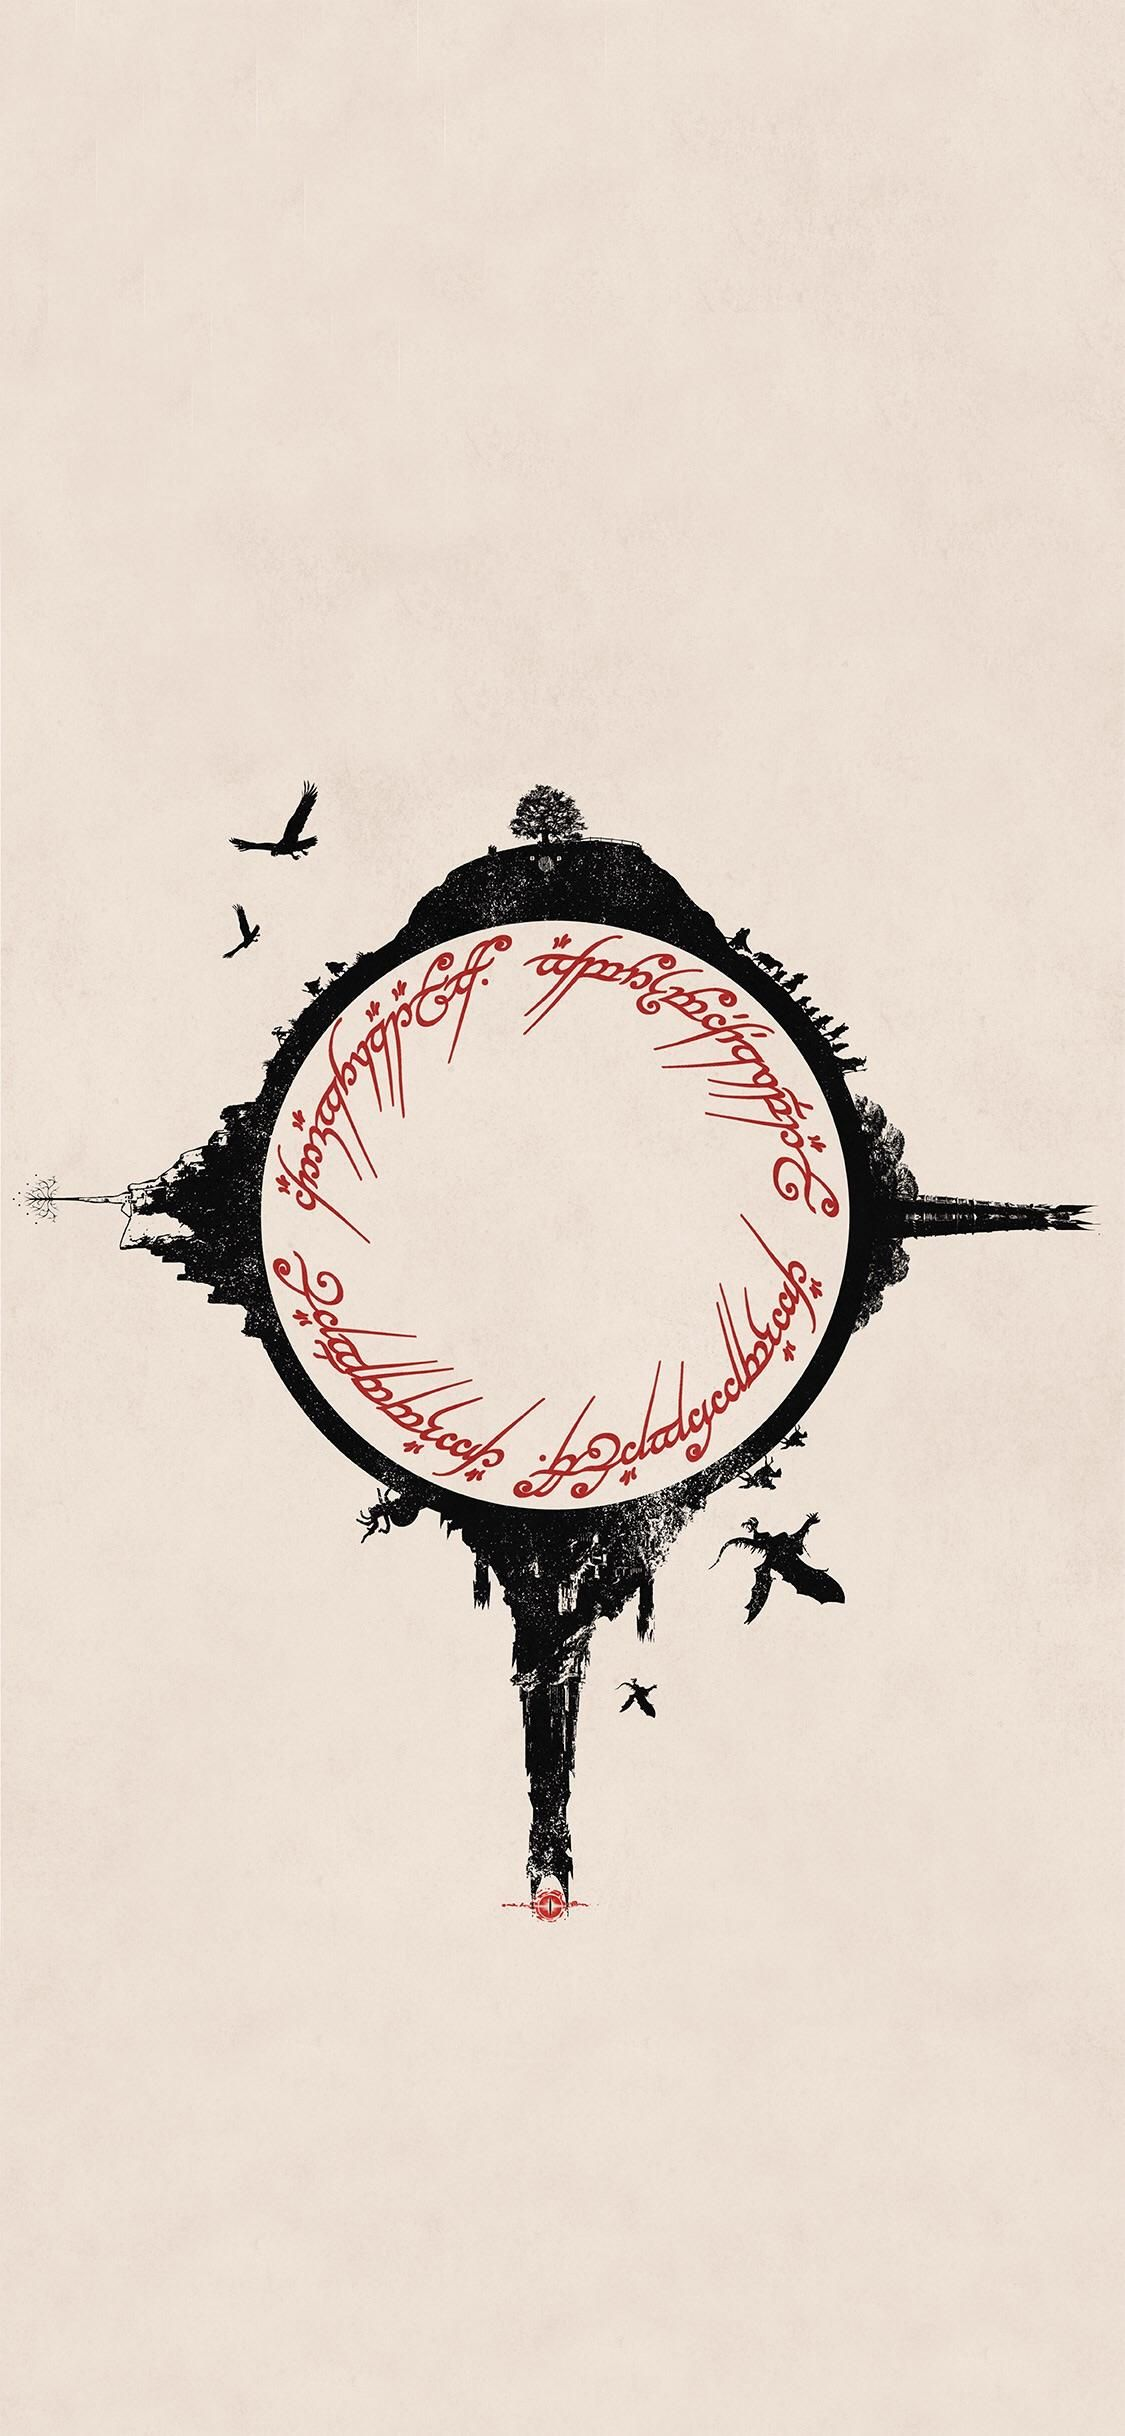 Lord Of The Rings Lotr For Iphone X Iphone X Wallpapers Iphonexwallpaper Lord Of The Rings Tattoo Lord Of The Rings Lotr Tattoo